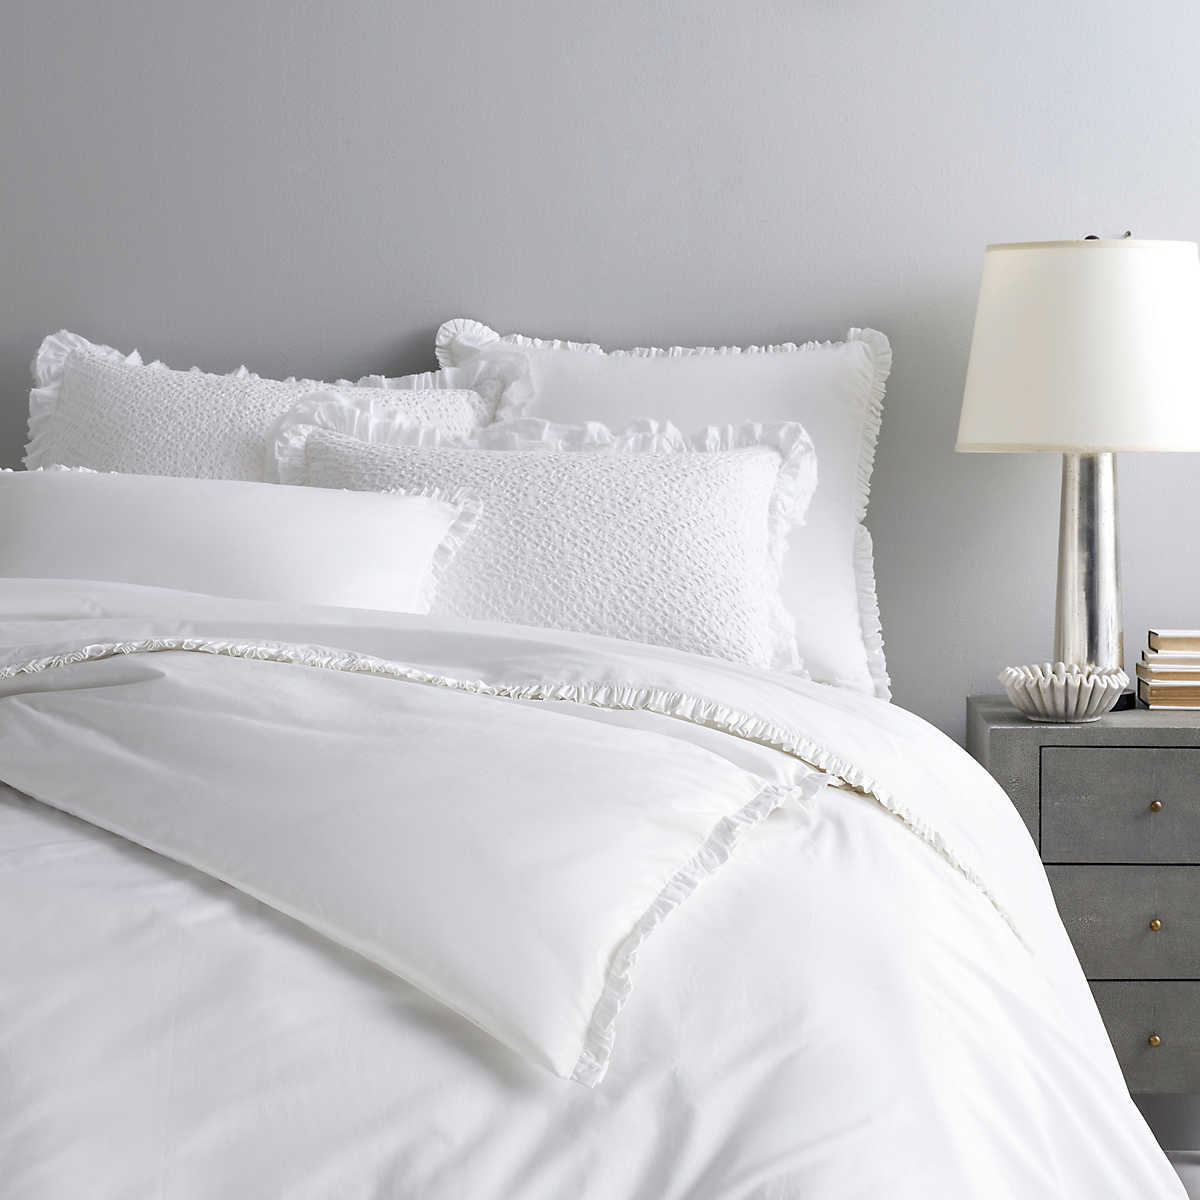 canada king covers twin cover set white size pleat pinch duvet off ruffle elegant